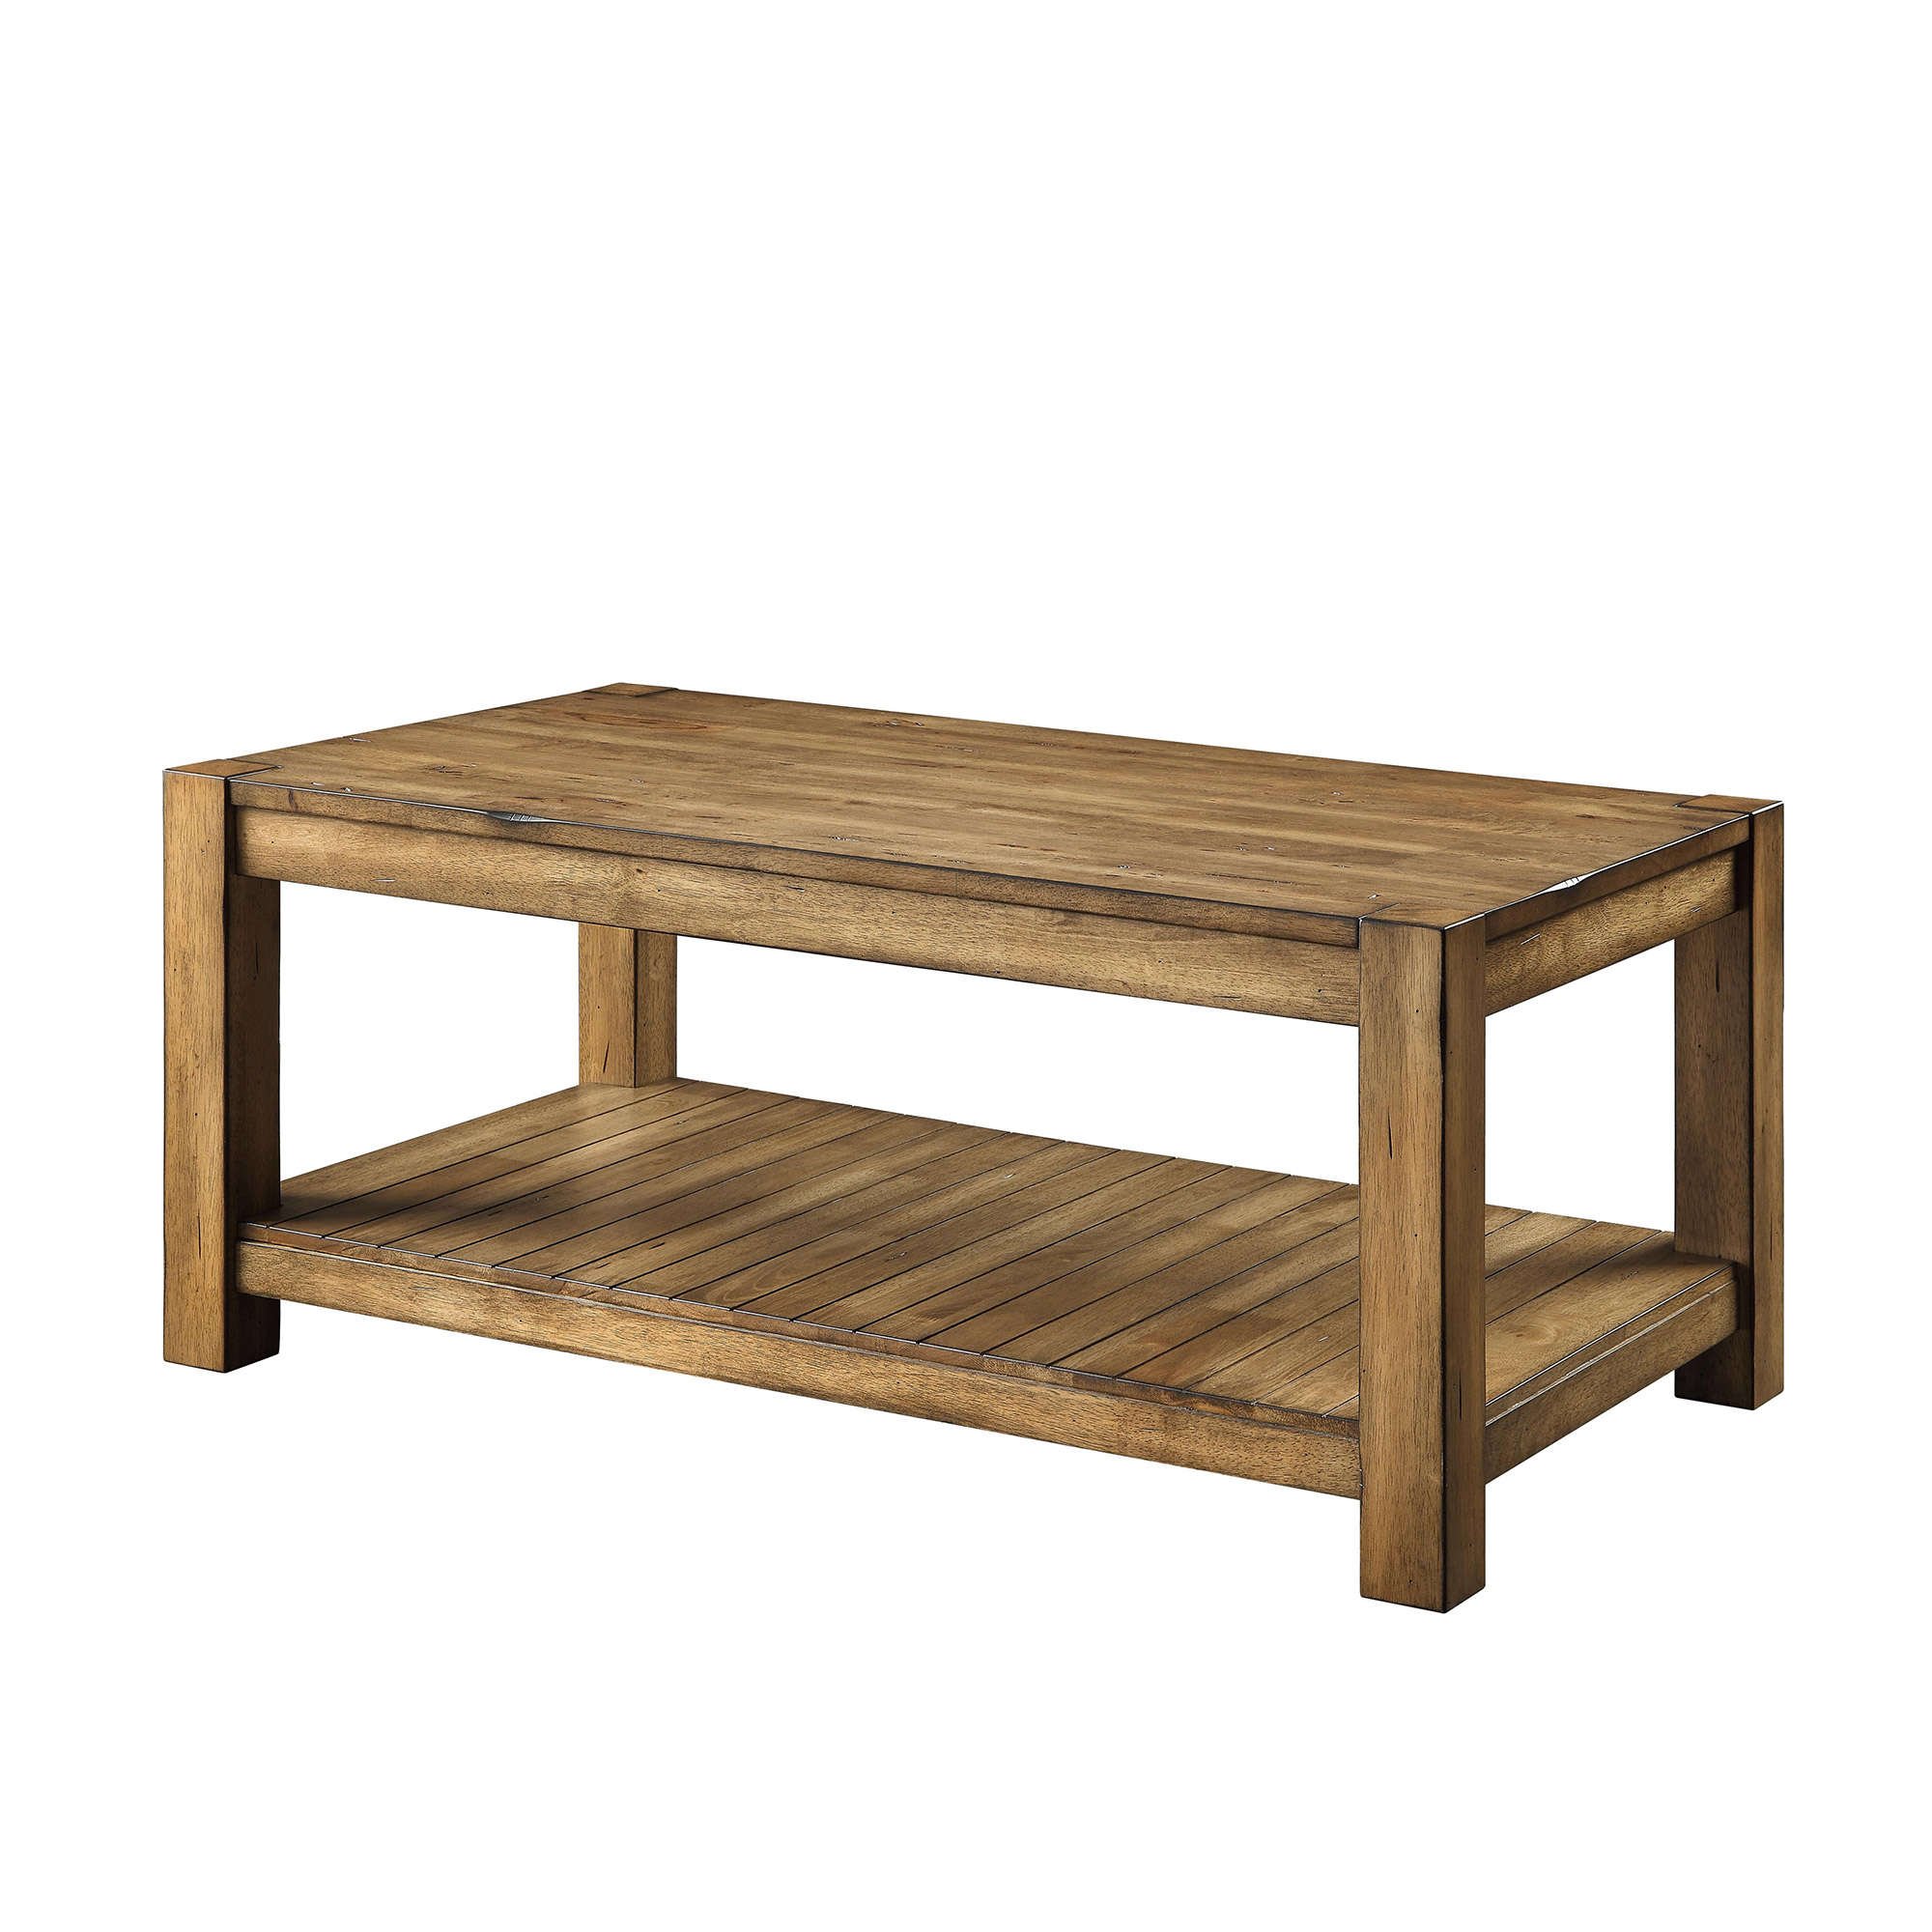 Better Homes U0026 Gardens Bryant Solid Wood Coffee Table, Rustic Maple Brown  Finish